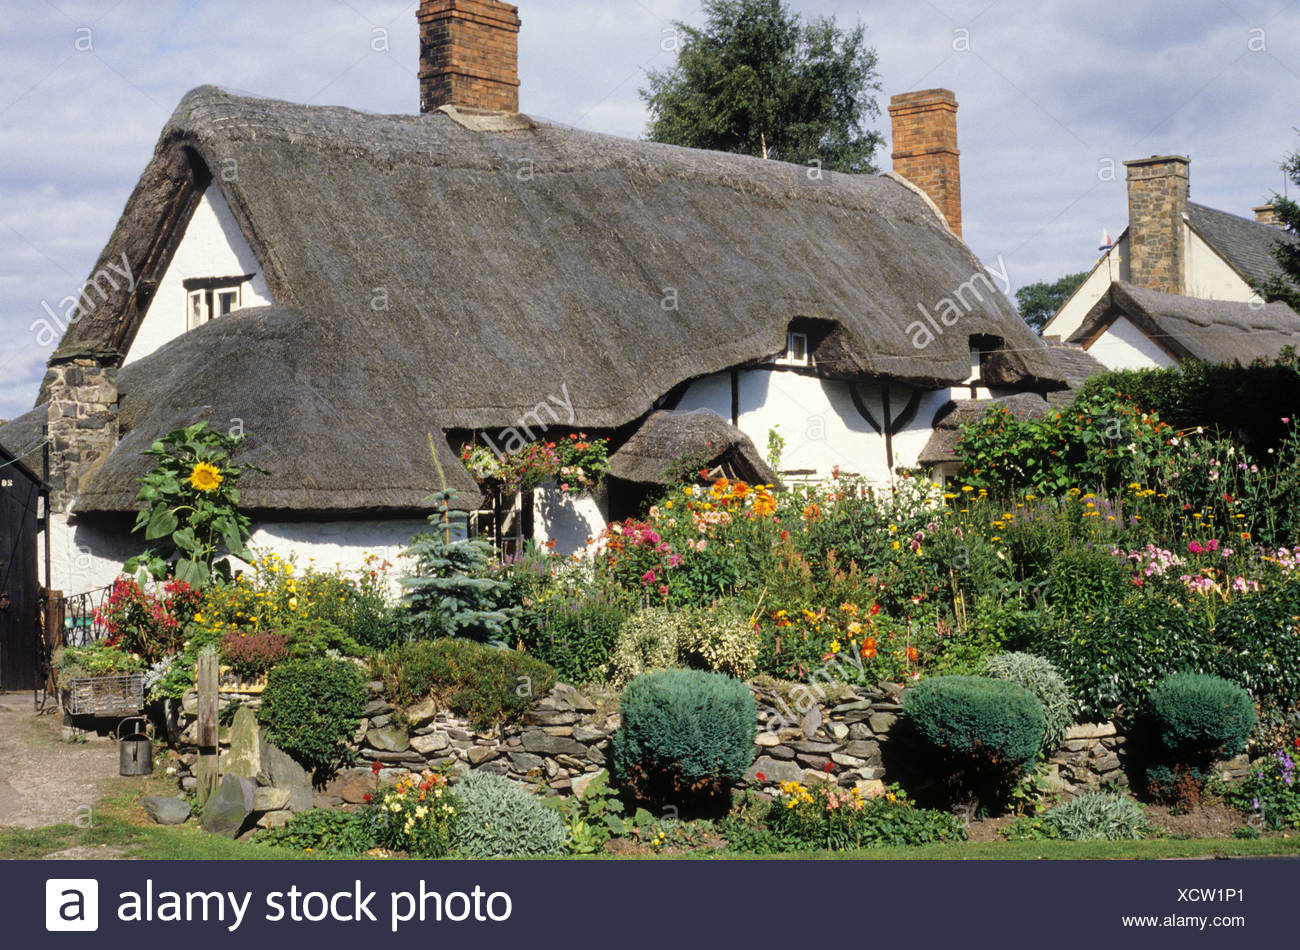 Traditional English Thatched Country Cottage Pest Cottage Woodhouse Leicestershire garden flowers plants charm charming peaceful - Stock Image